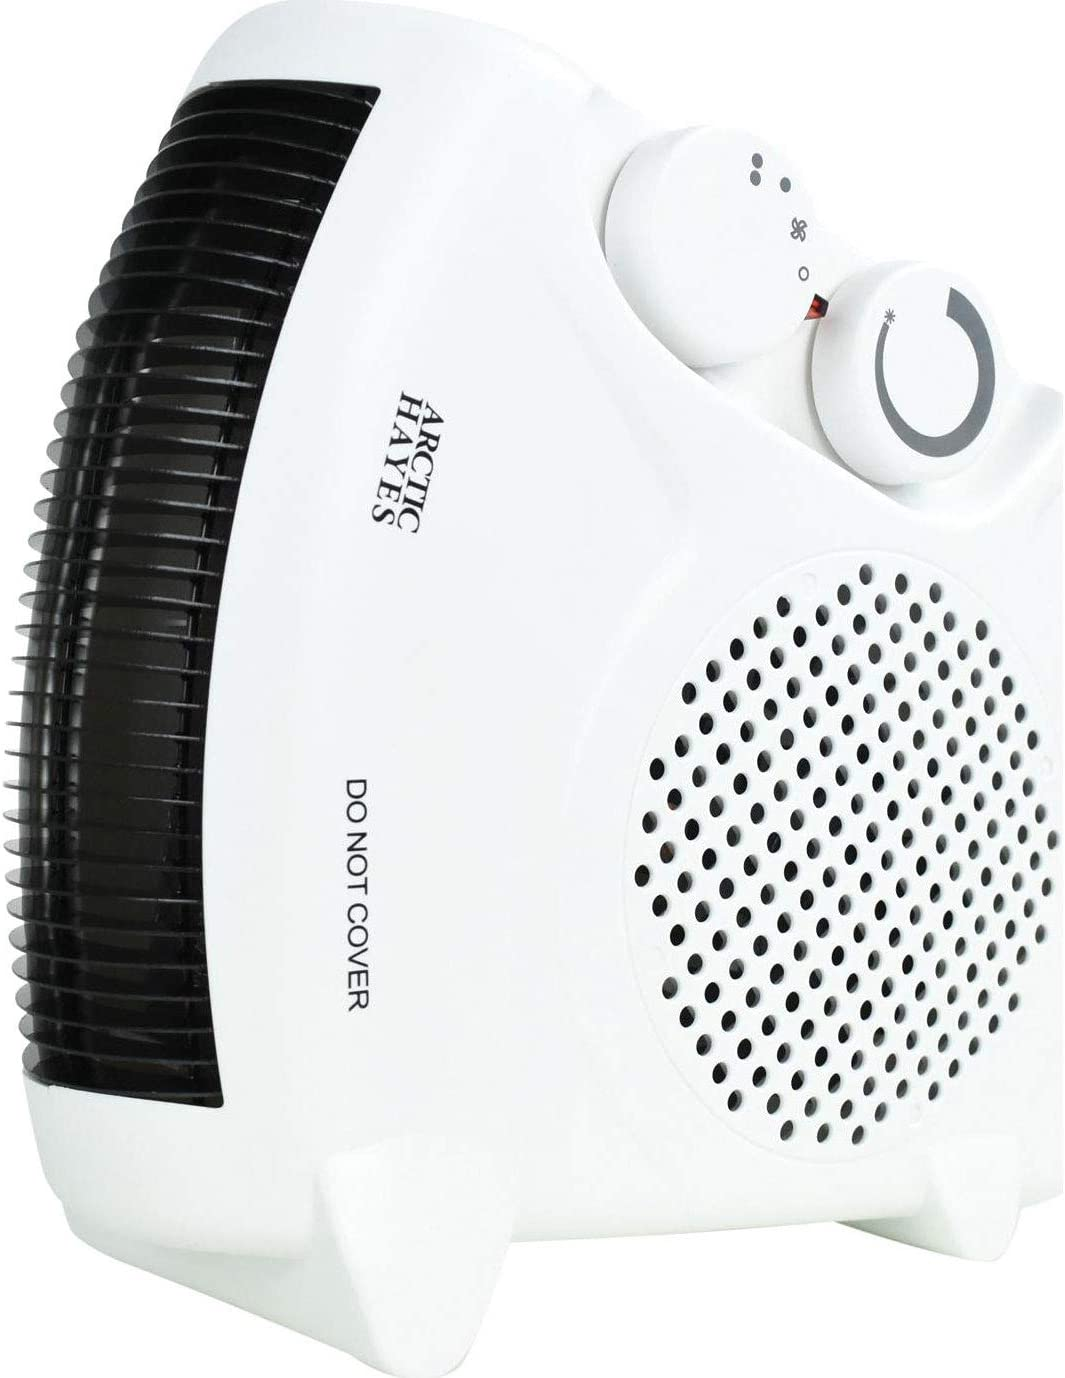 Arctic Hayes Dual Thermal Fan Heater